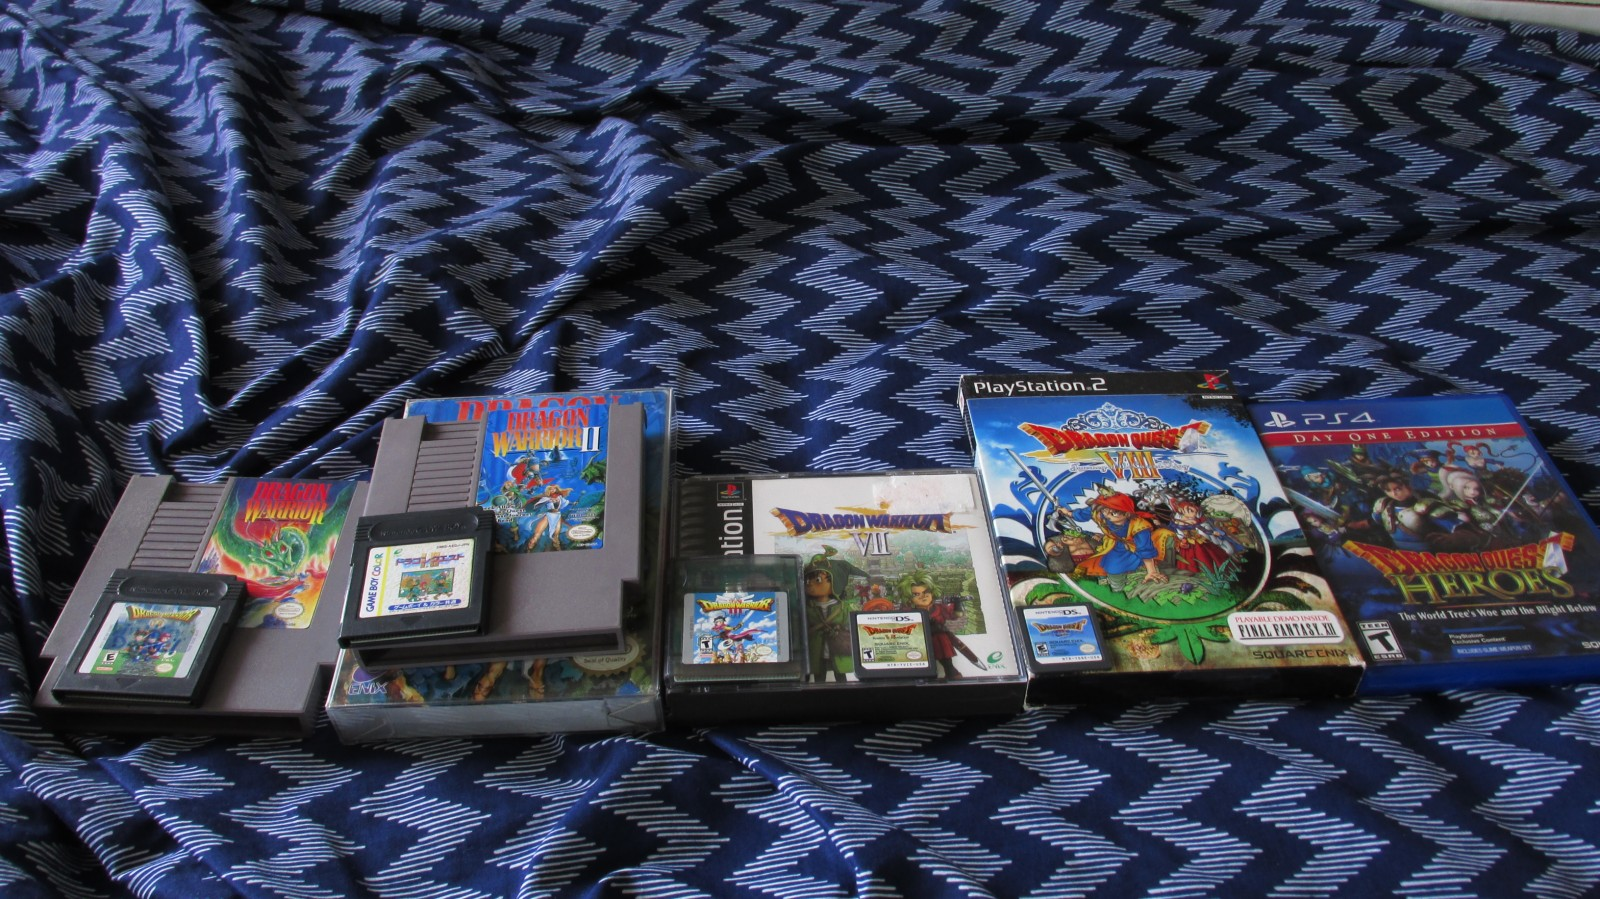 RetroIndieGamer's Series collections